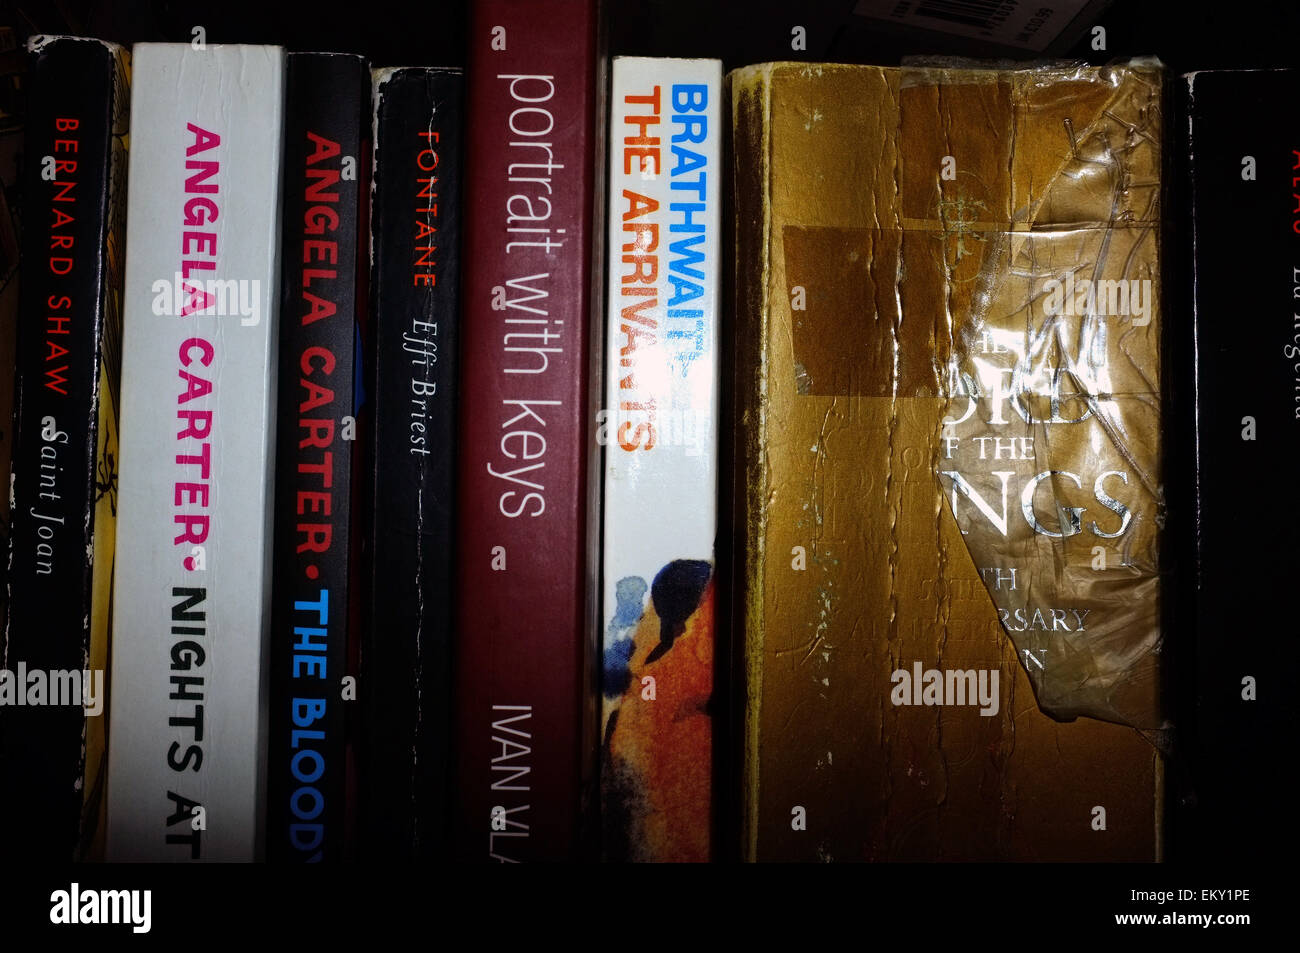 A row of books in varying conditions photographed against a black background. - Stock Image